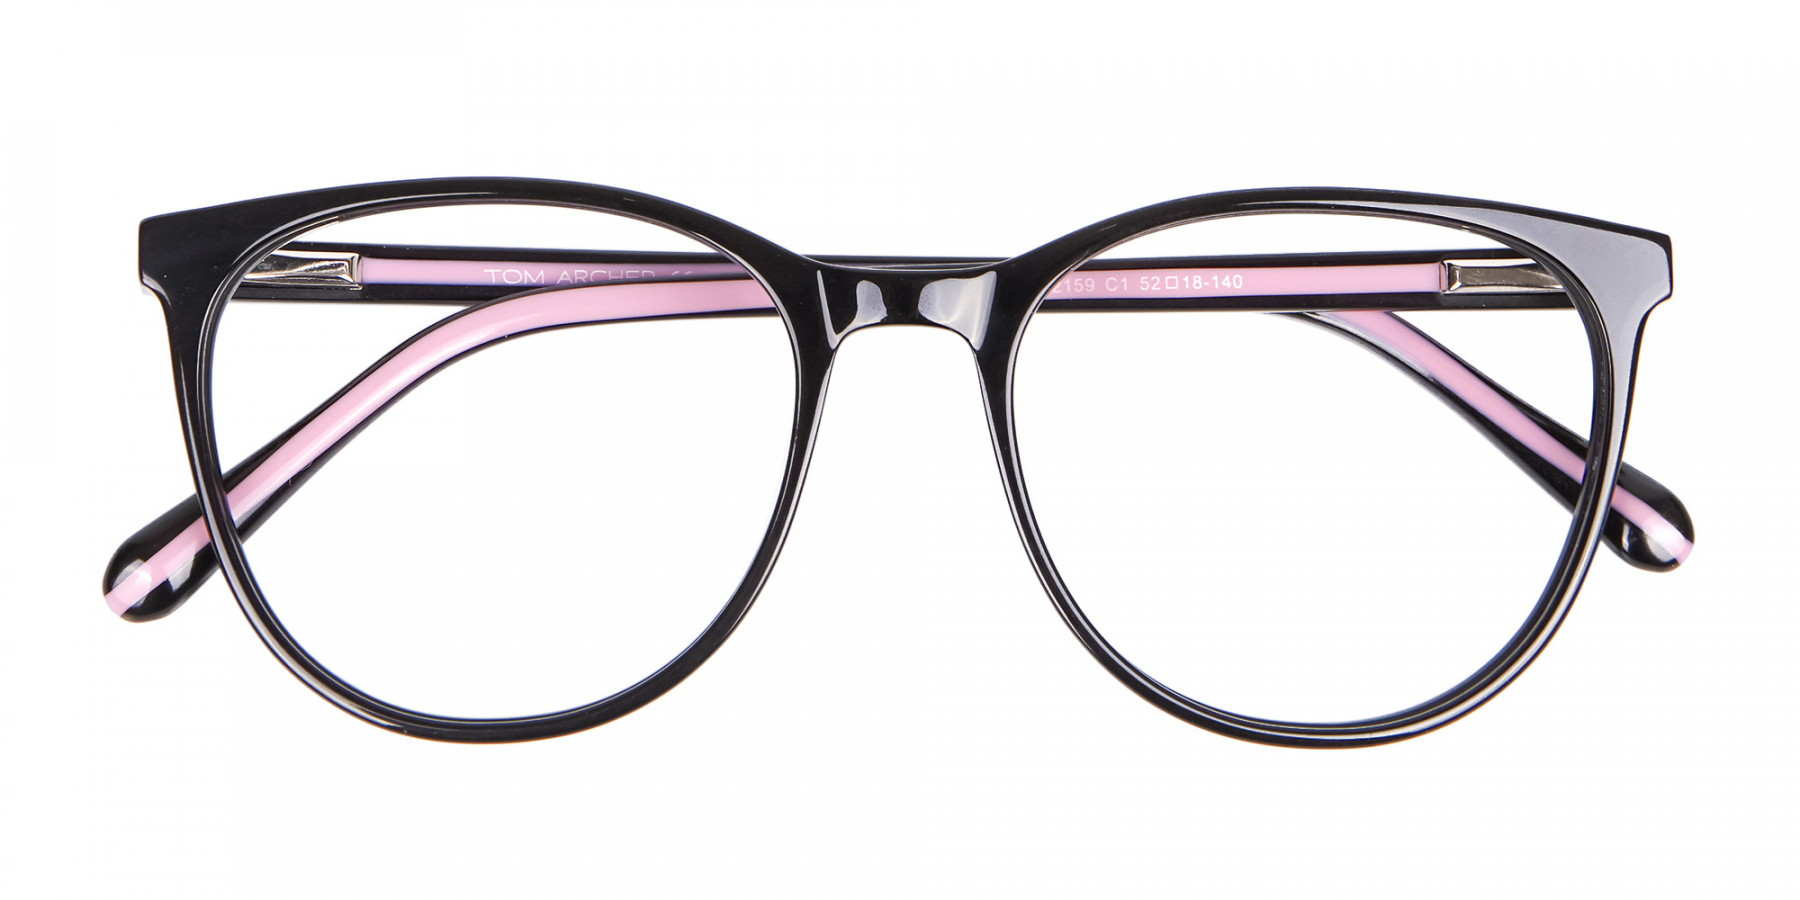 Retro Round Glasses in Black & Pink with Stripes - 1